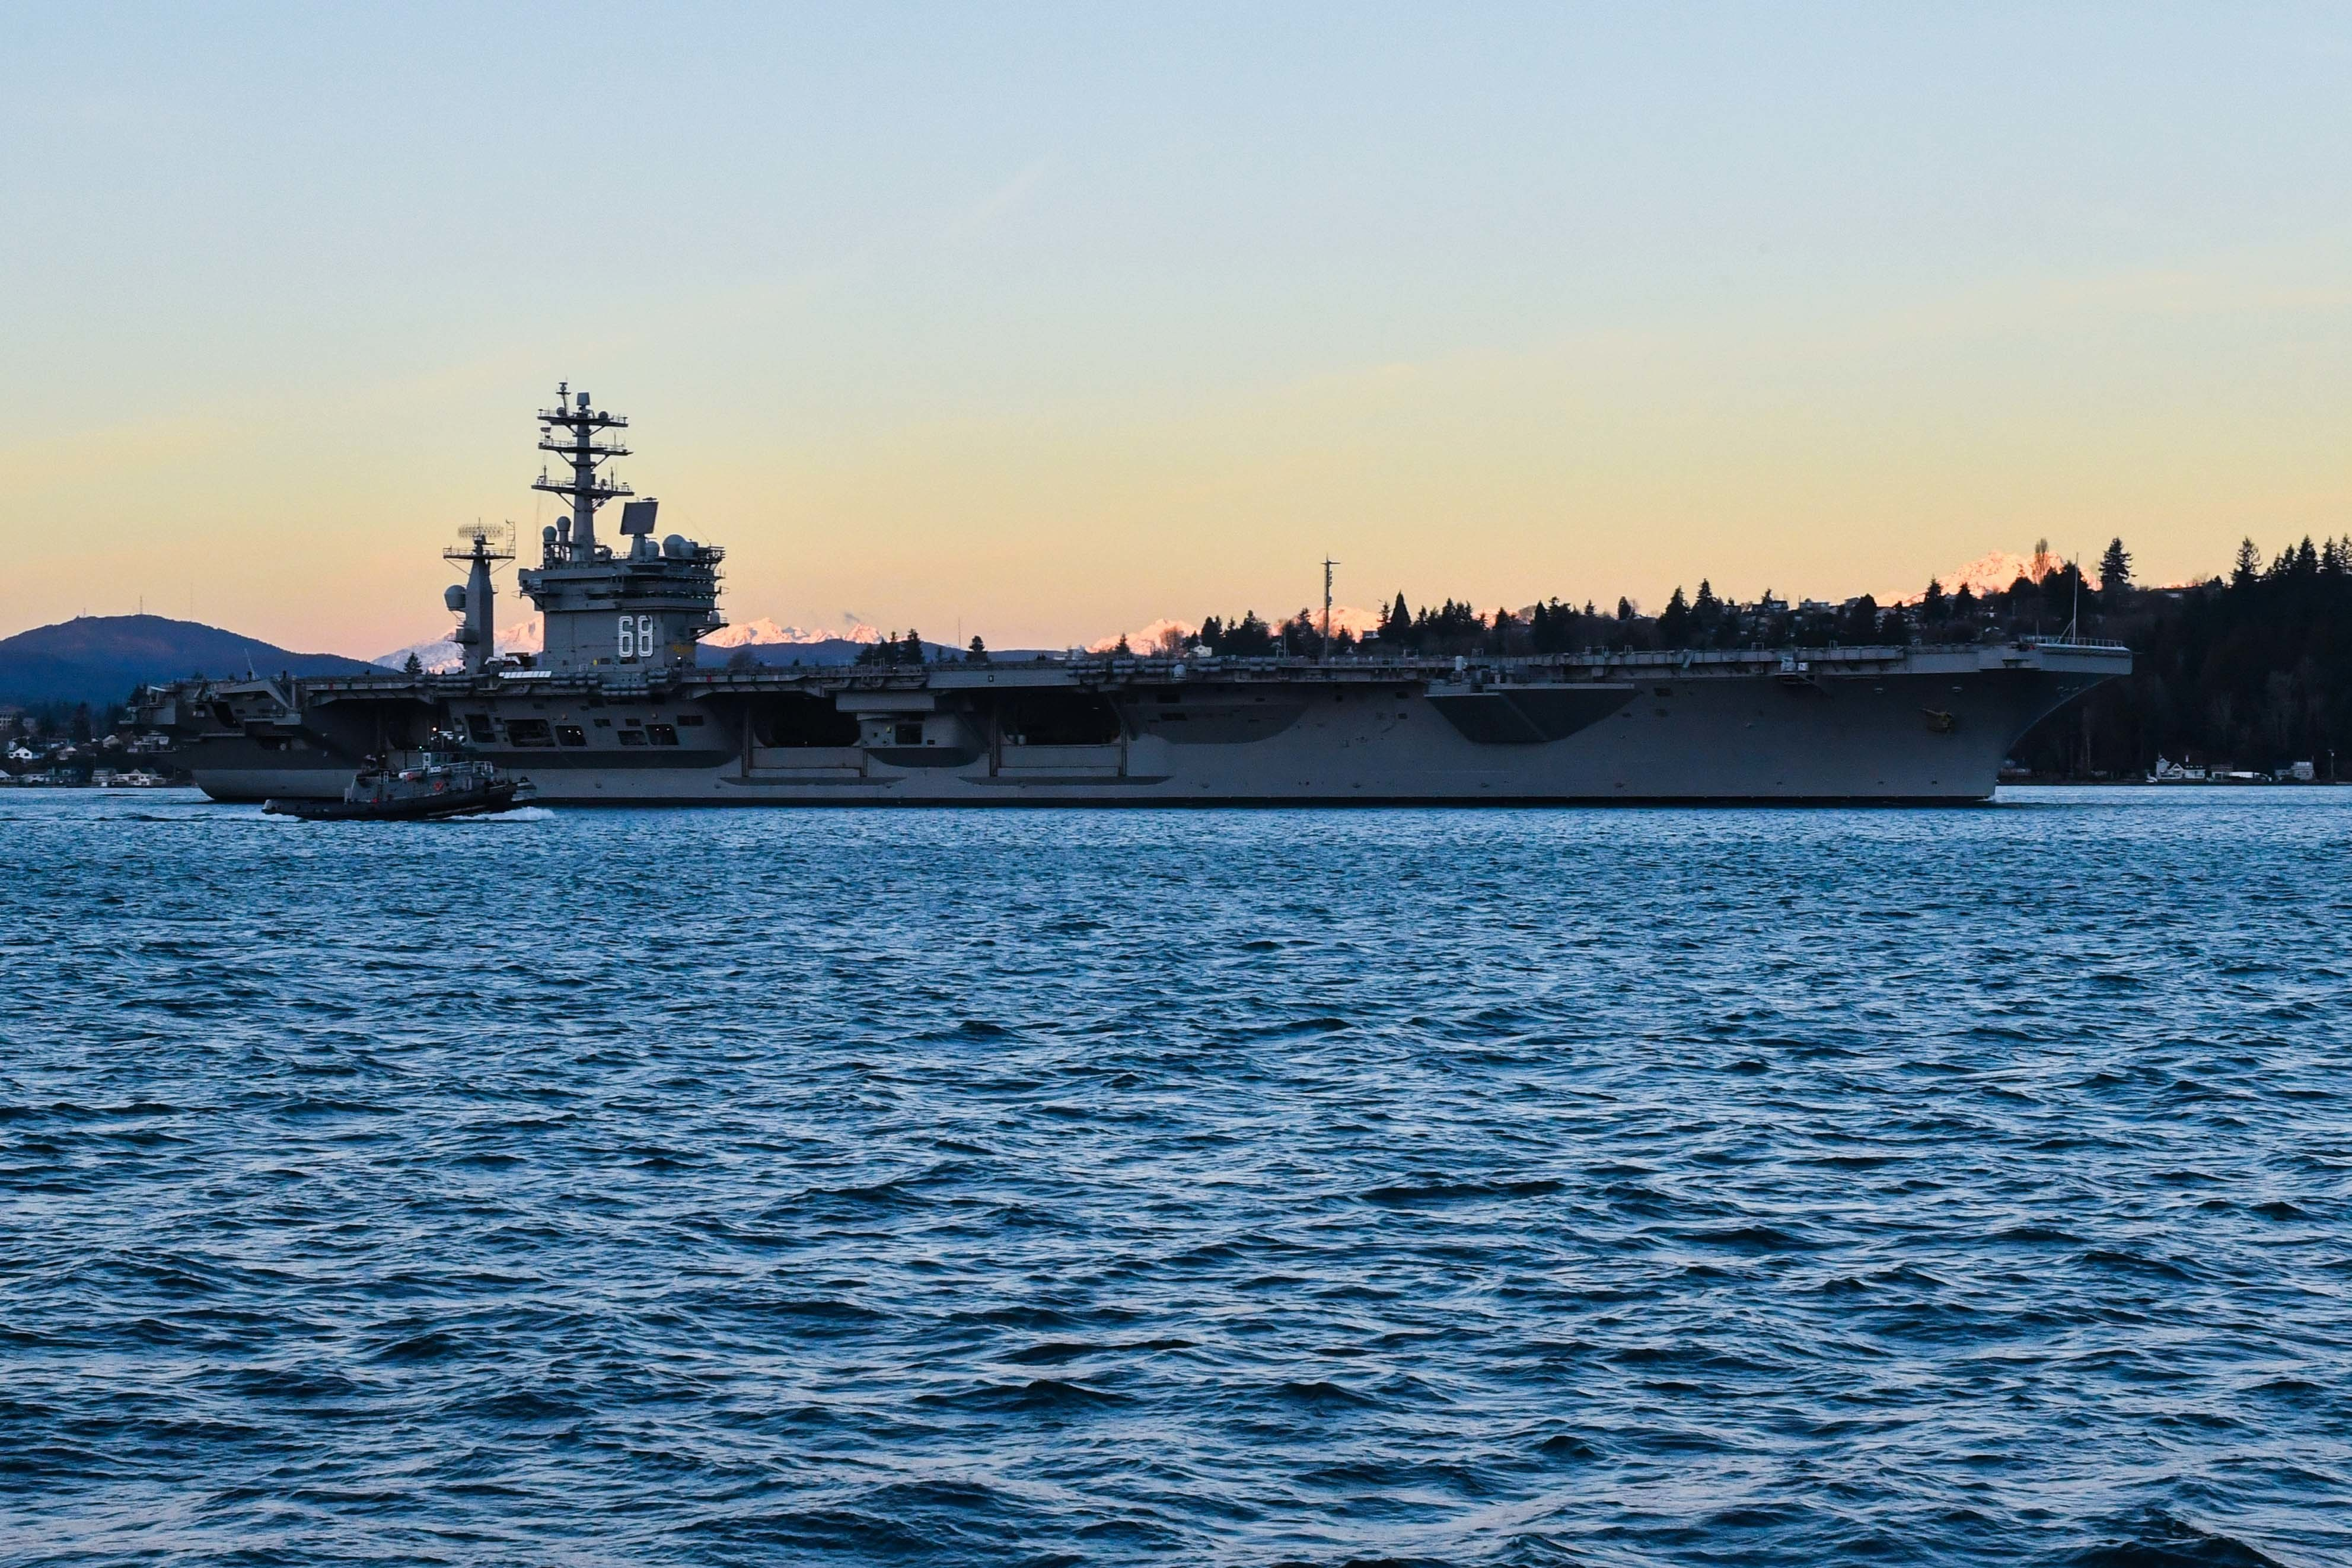 Nimitz gets underway to conduct INSURV